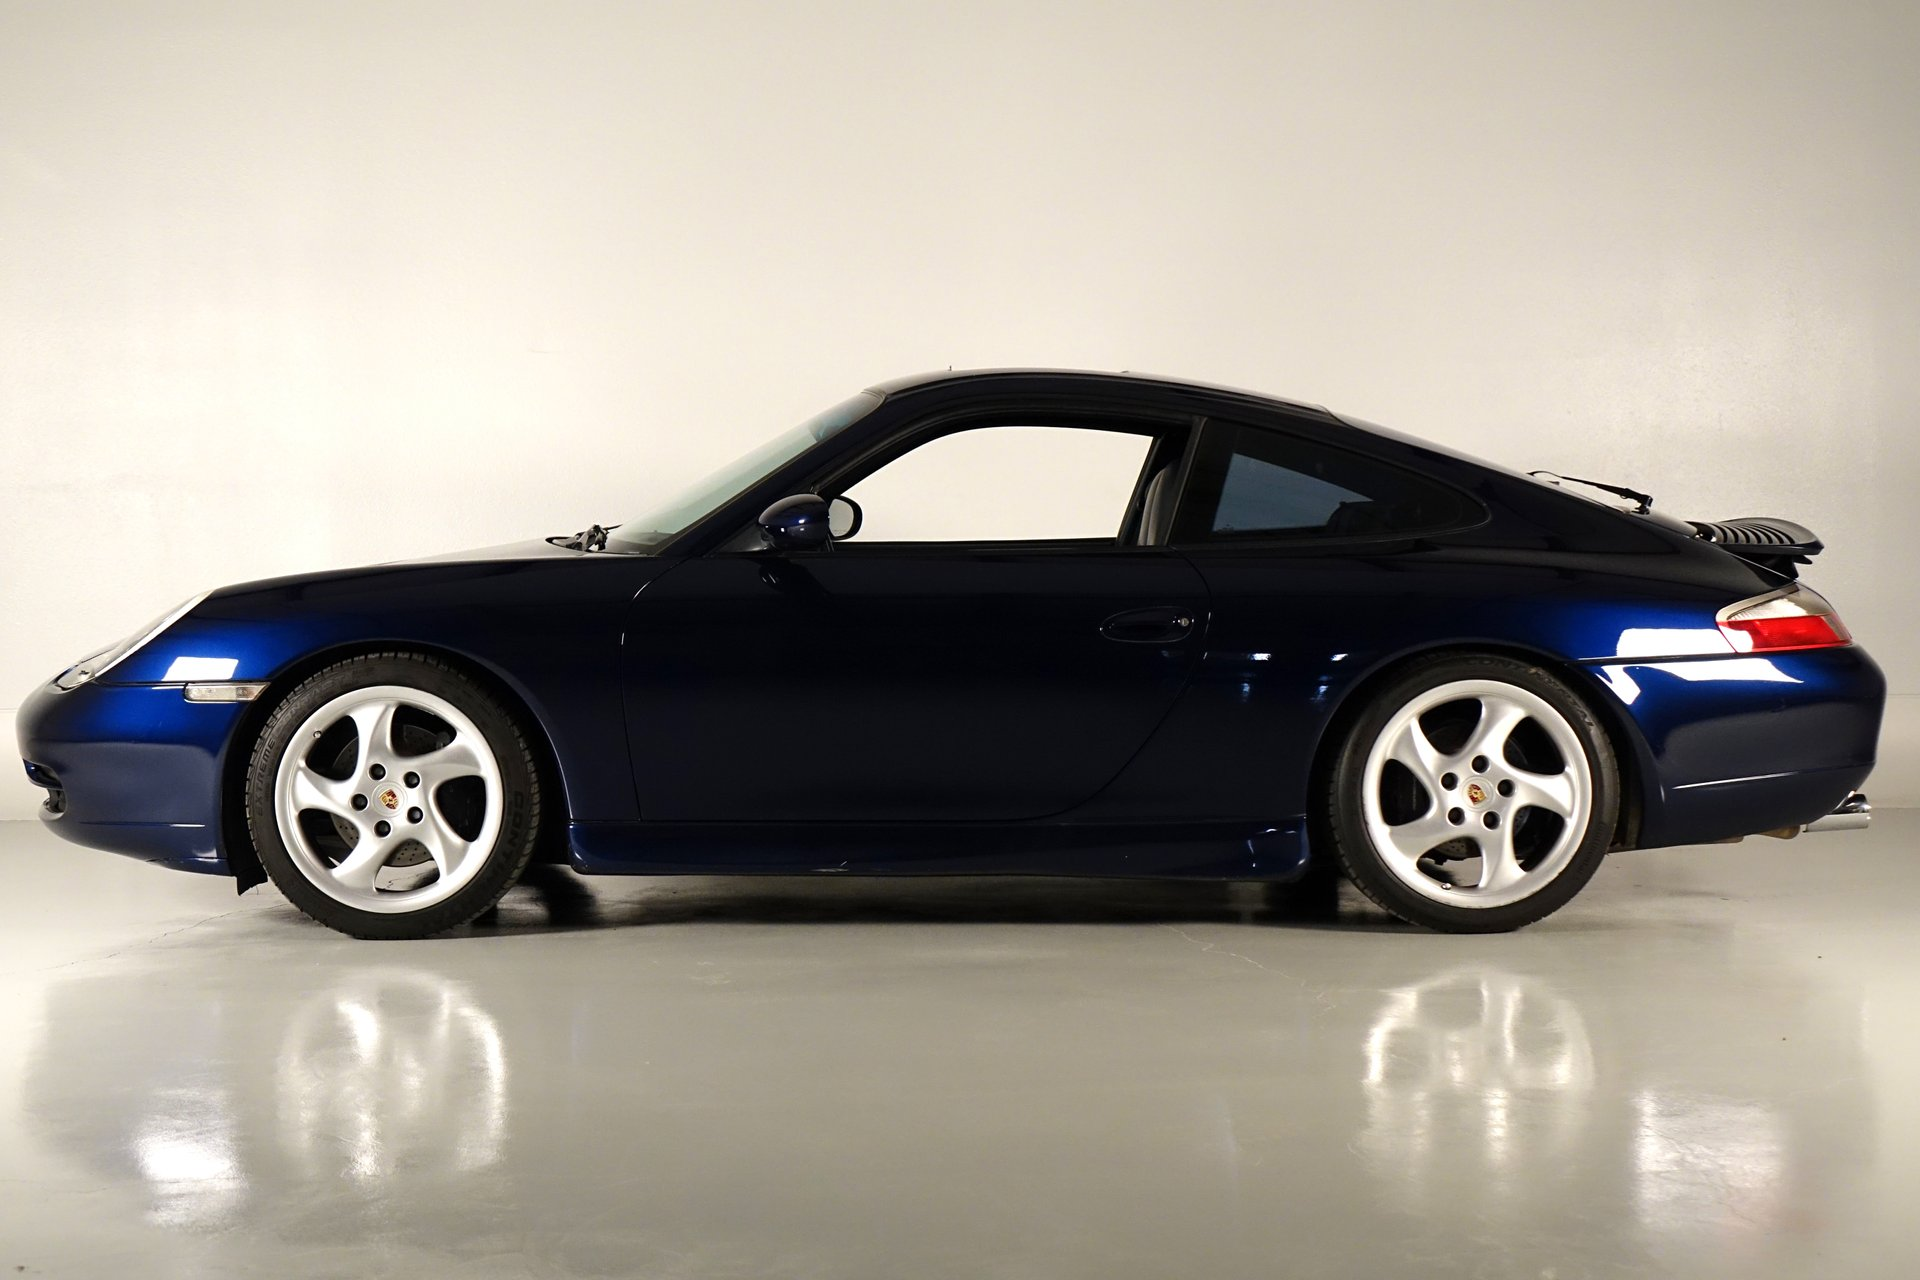 2001 porsche 911 carrera 2dr carrera cpe 6 spd manual